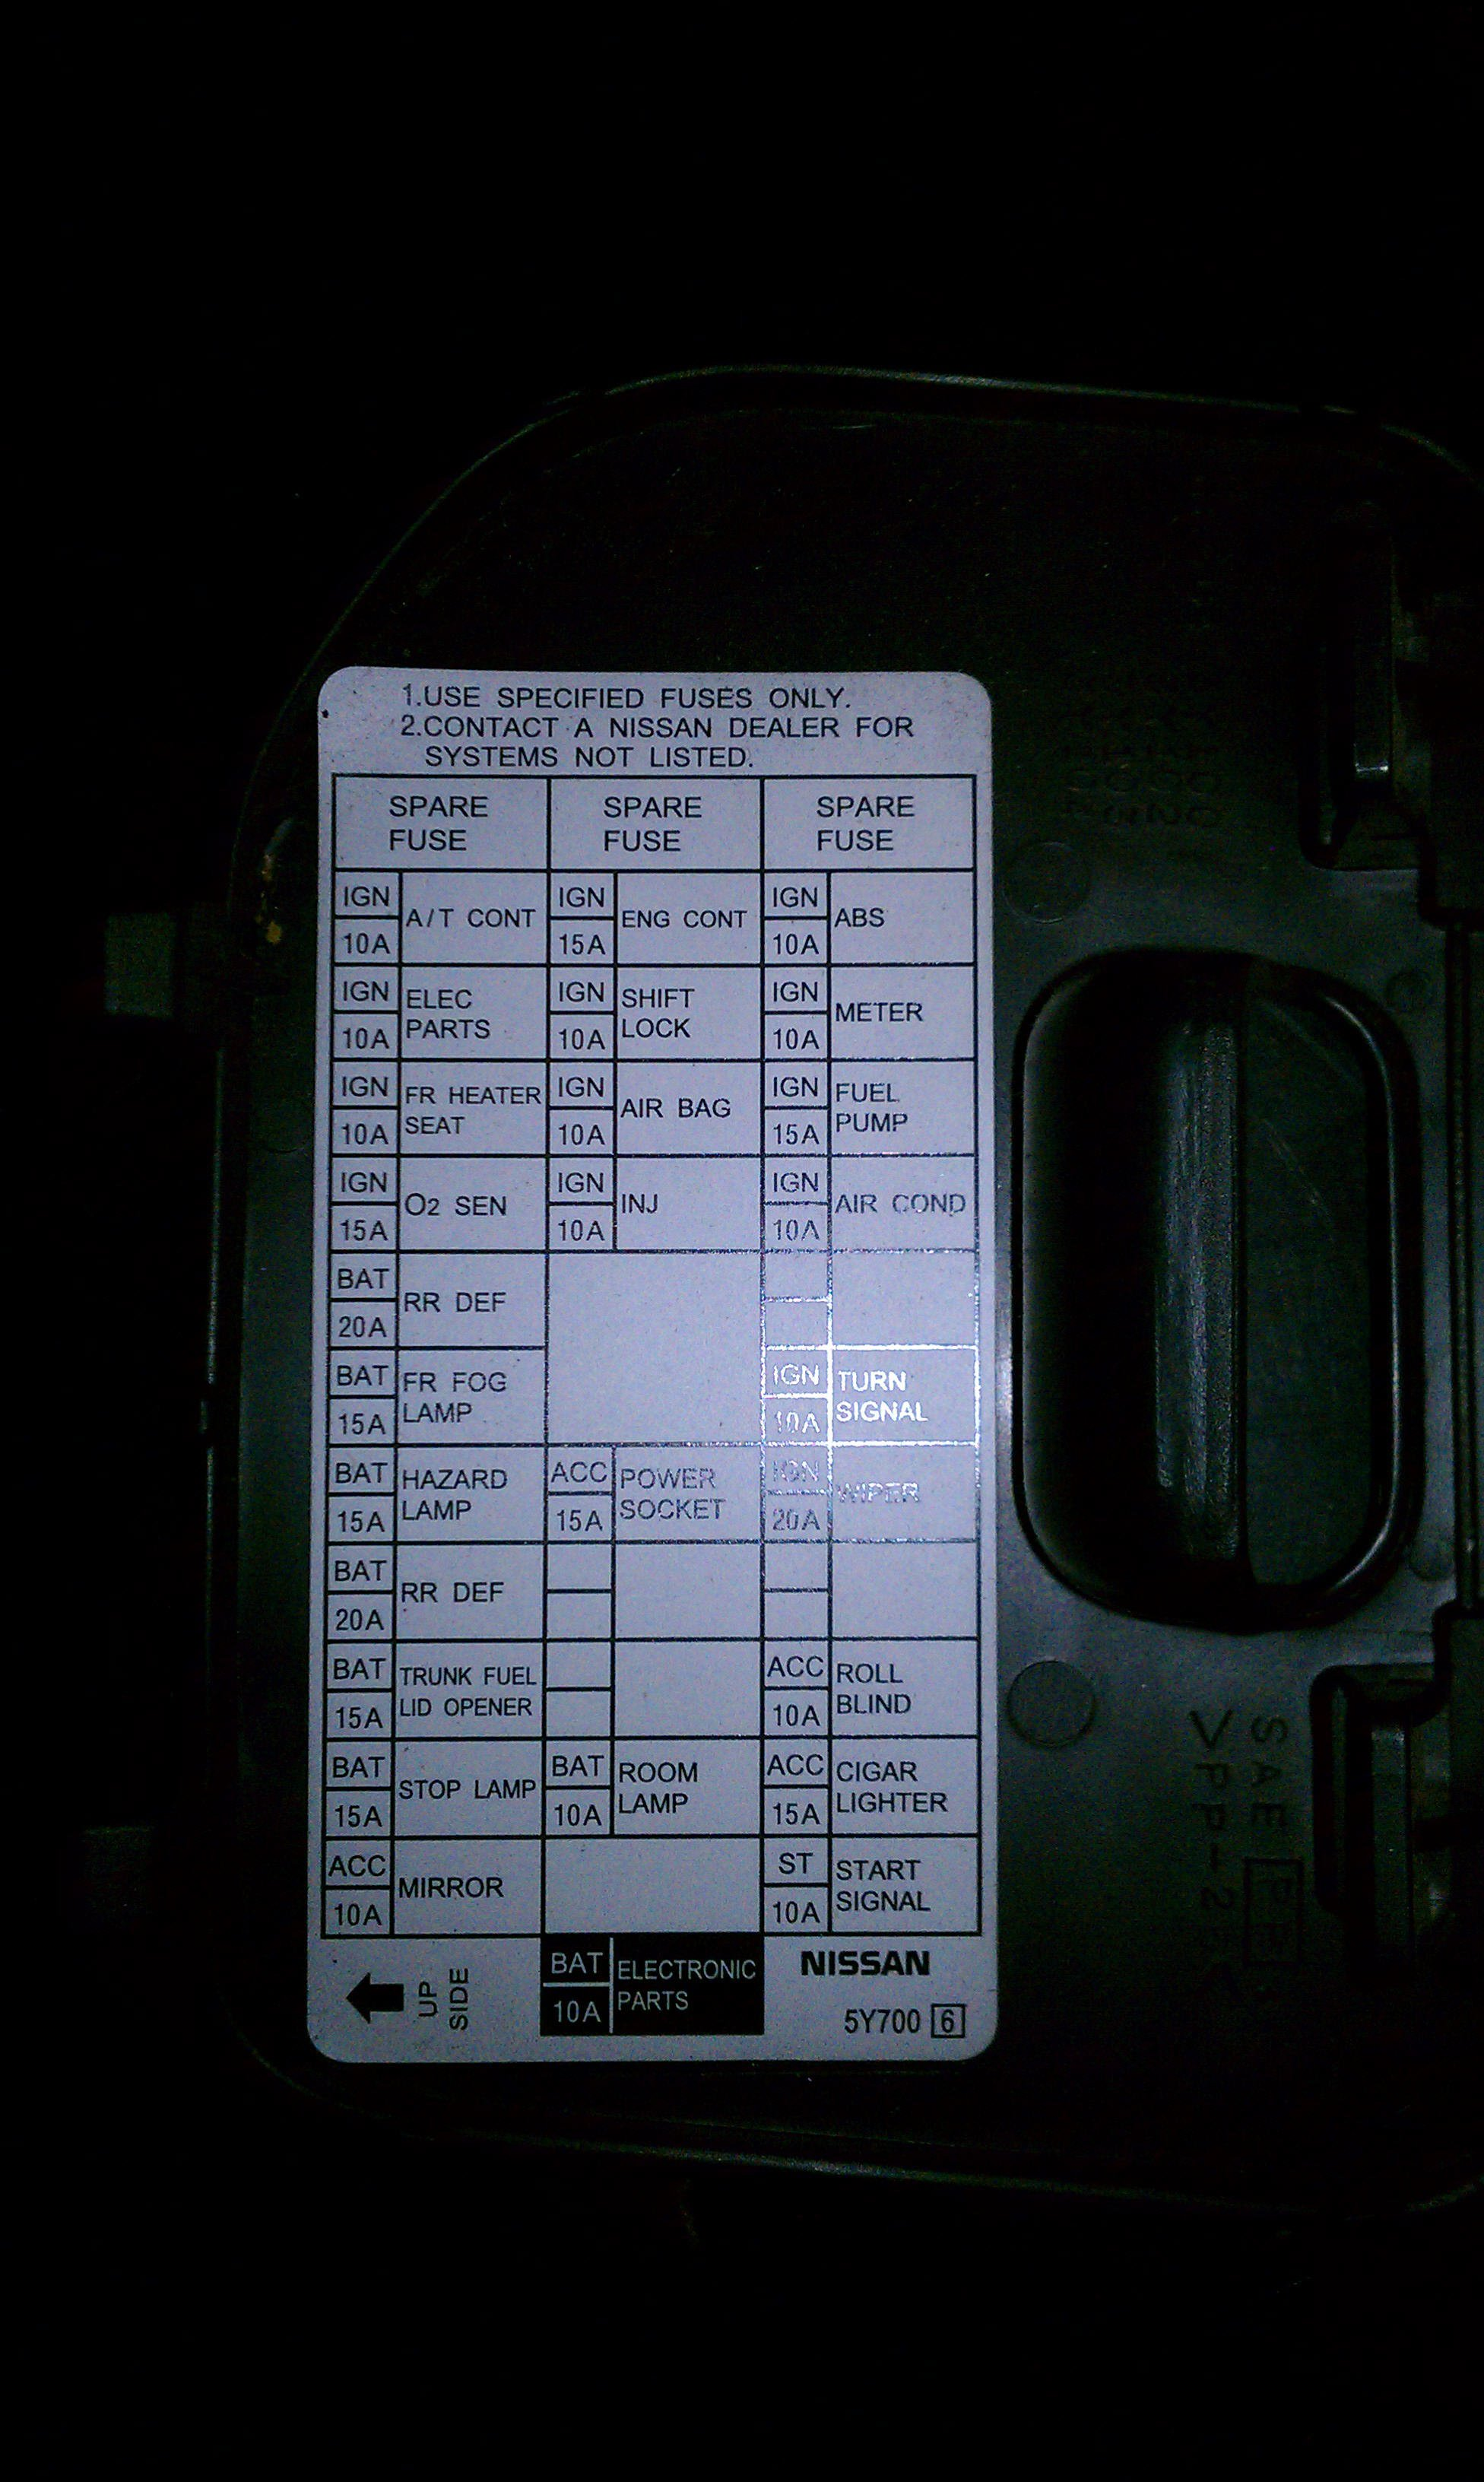 07 Infiniti G35 Fuse Box Location Wiring Library Ipdm Diagram 2003 I35 Automotive U2022 Gasket For 2004